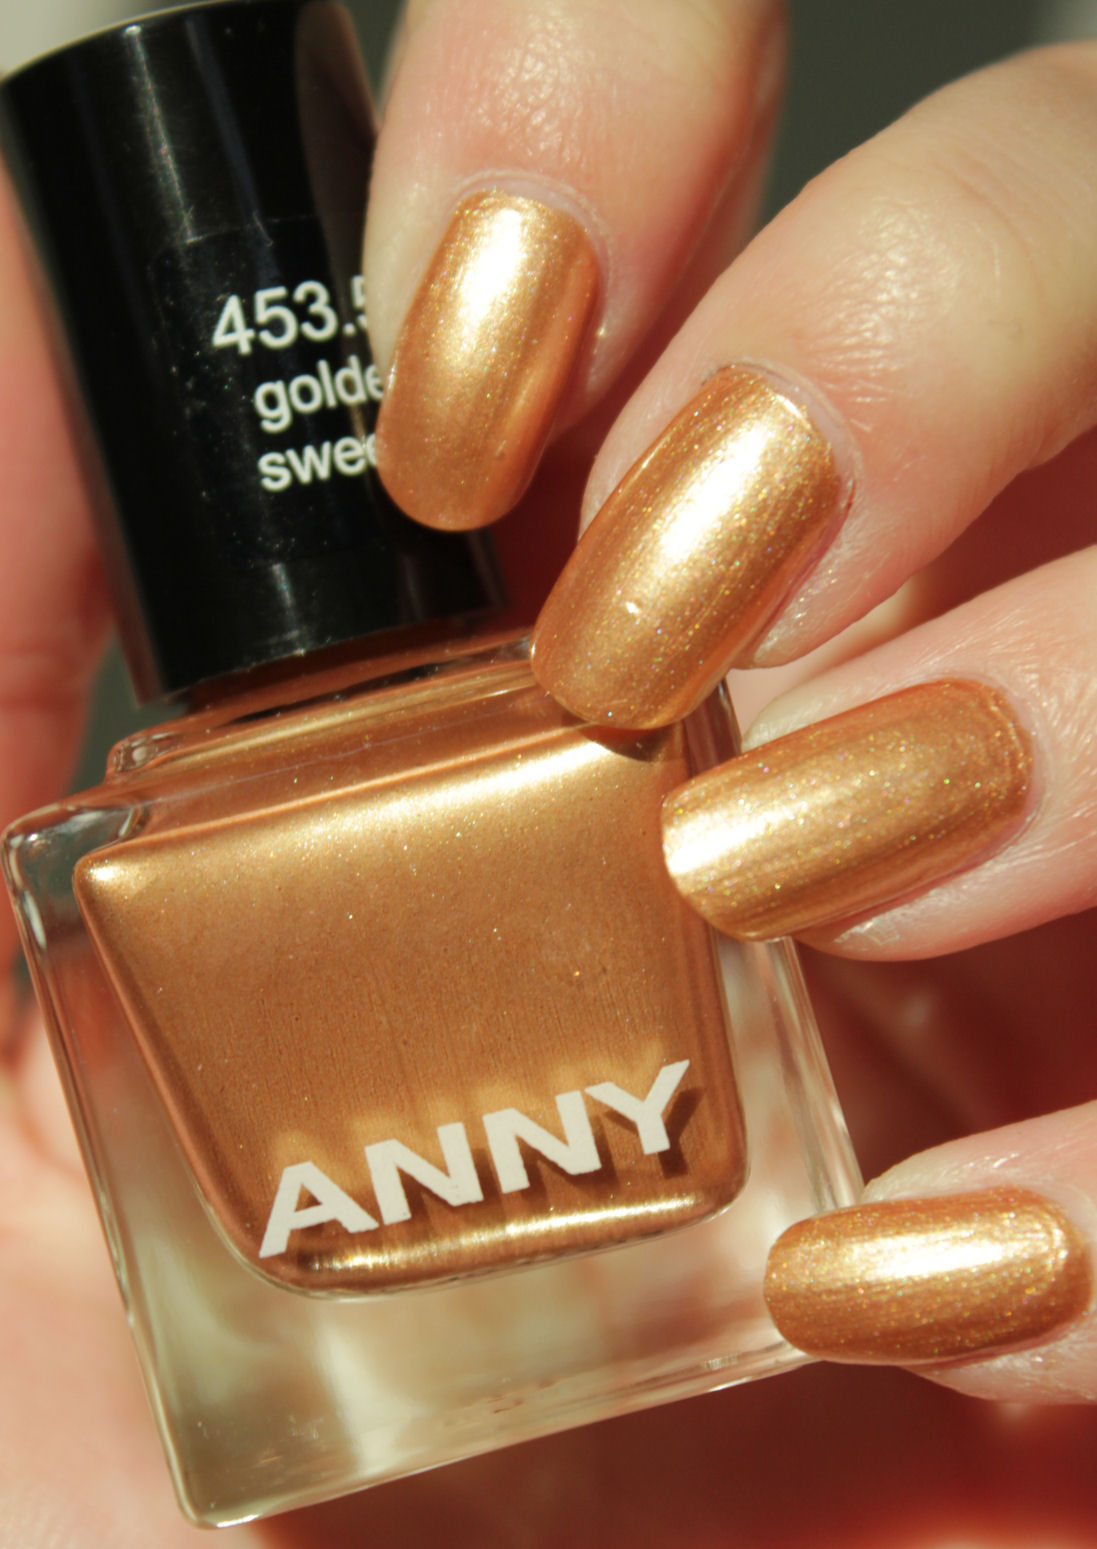 http://lacquediction.blogspot.de/2014/12/anny-45350-golden-sweetie-notd-gold-blue.html